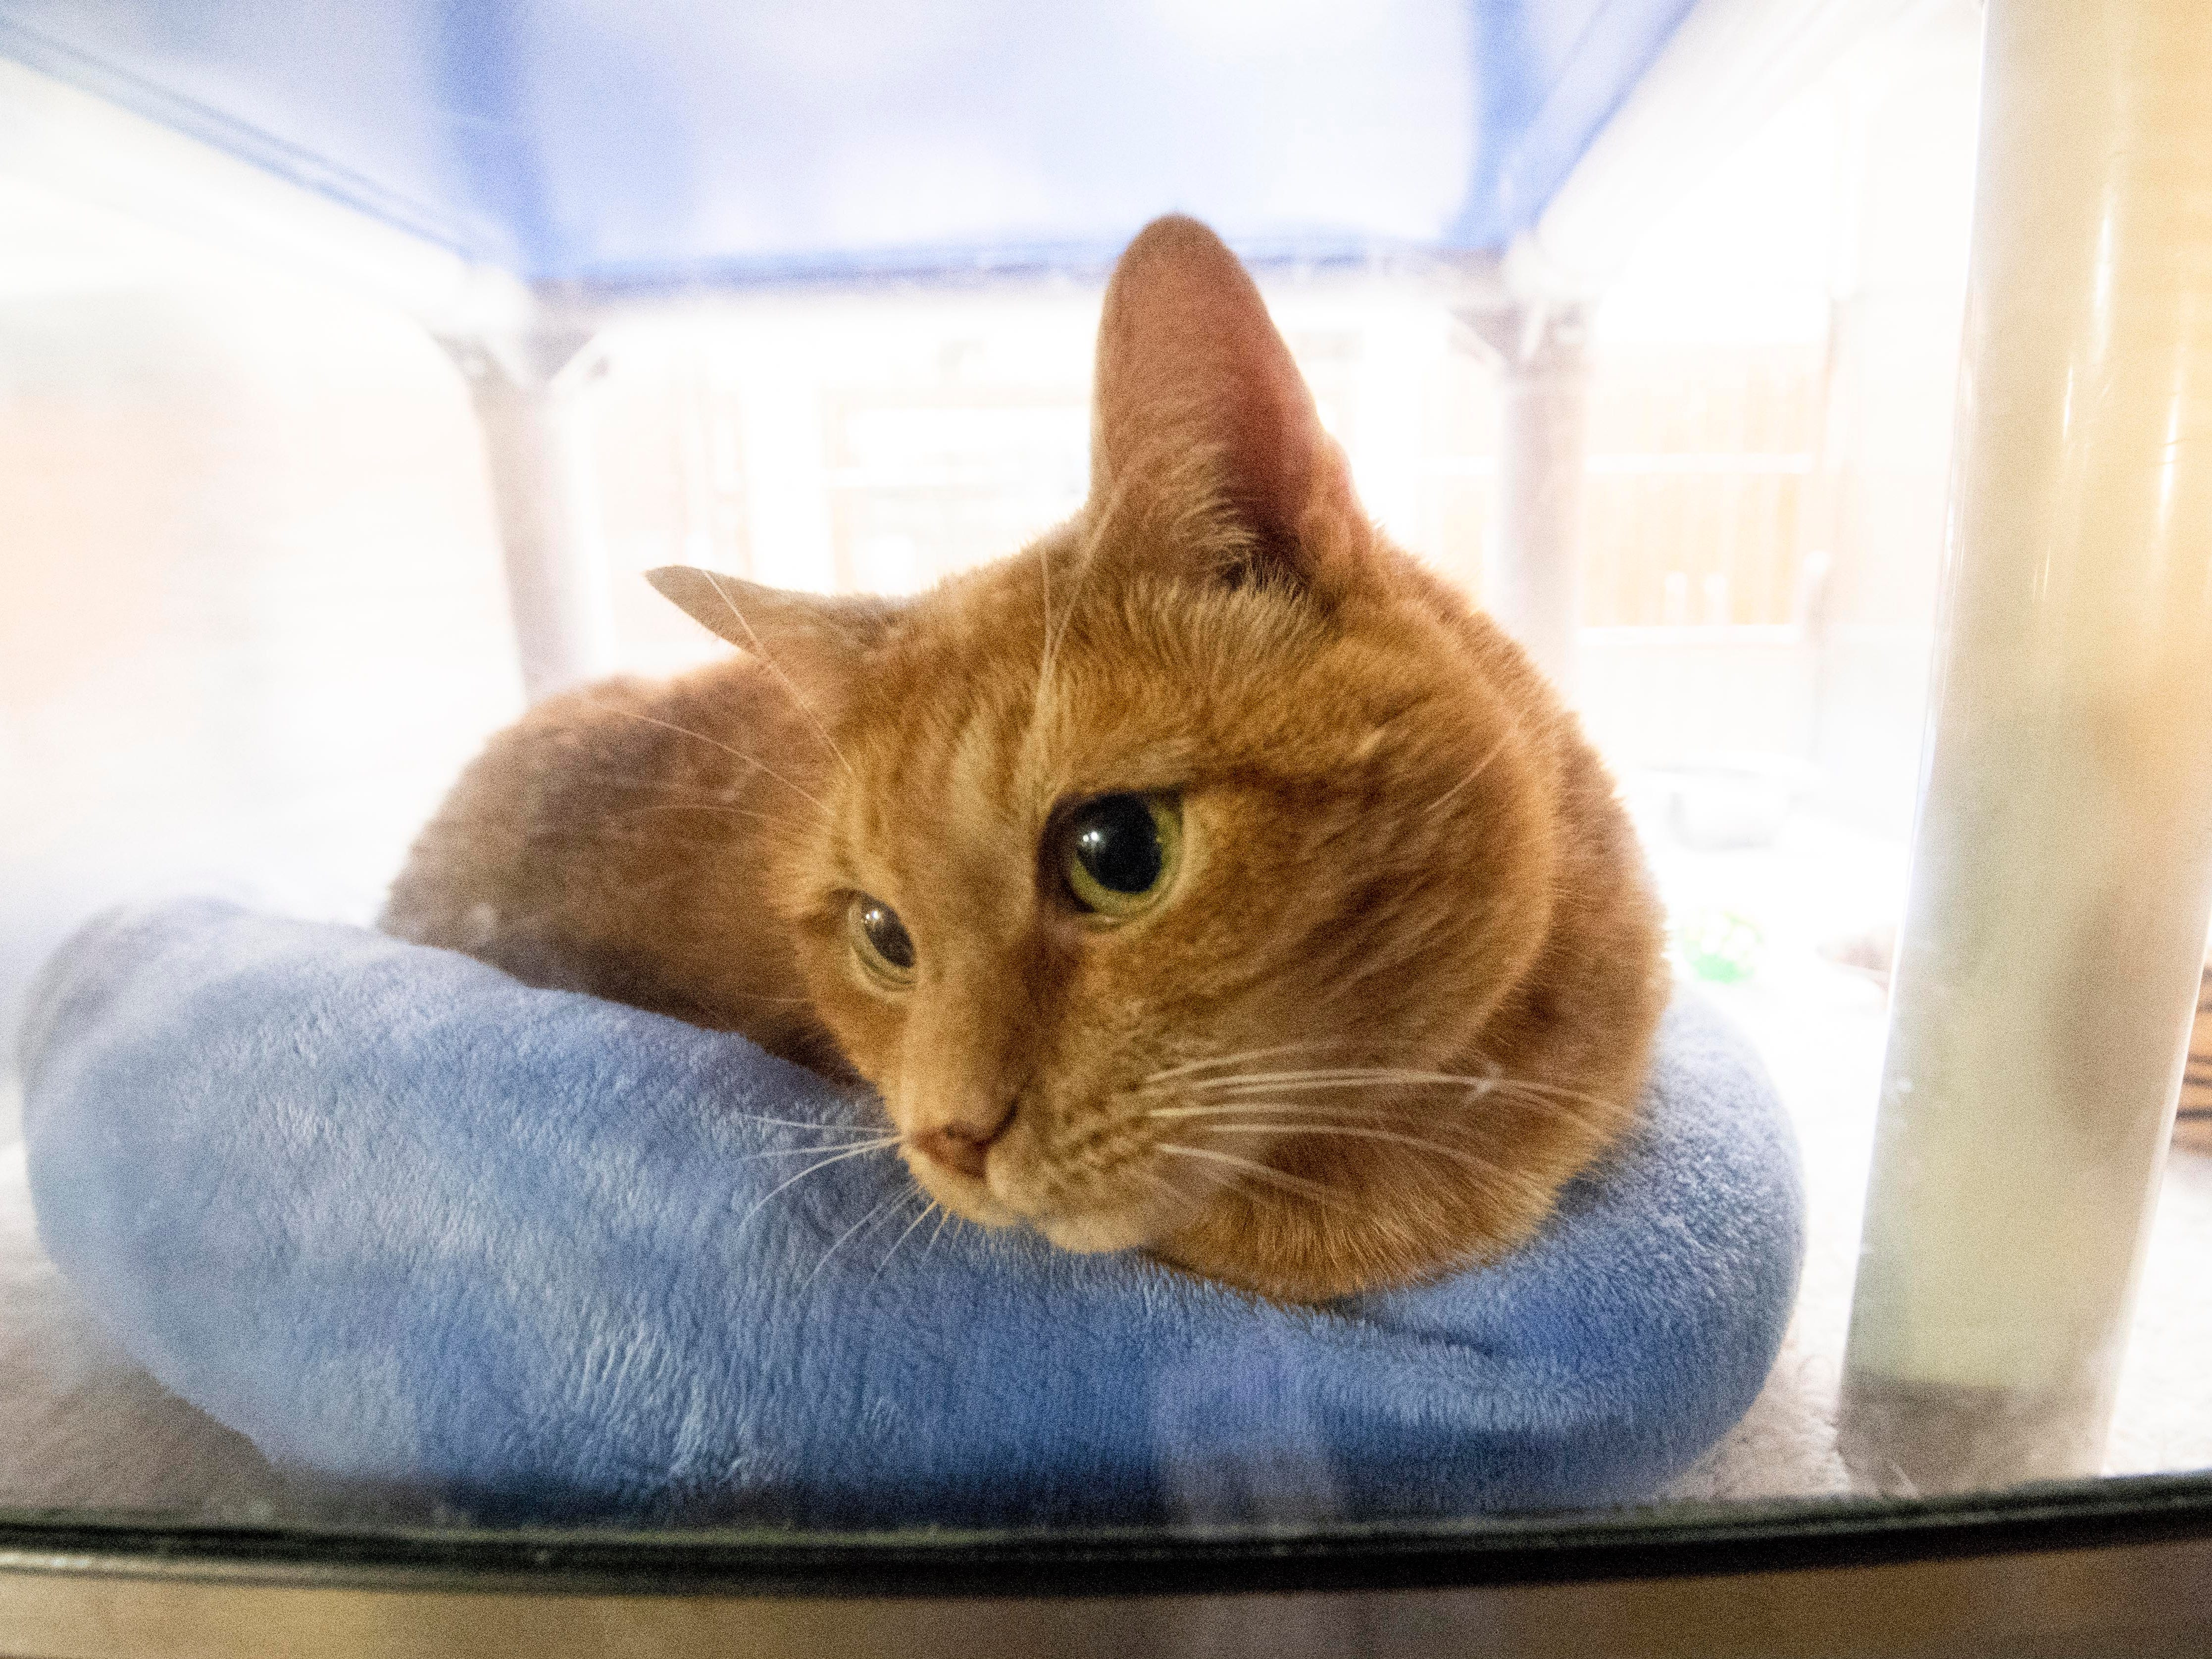 Fat Cat, an 8-year old orange breed, was brought to the shelter because he became aggressive toward the toddler in the home, but is good with adults.